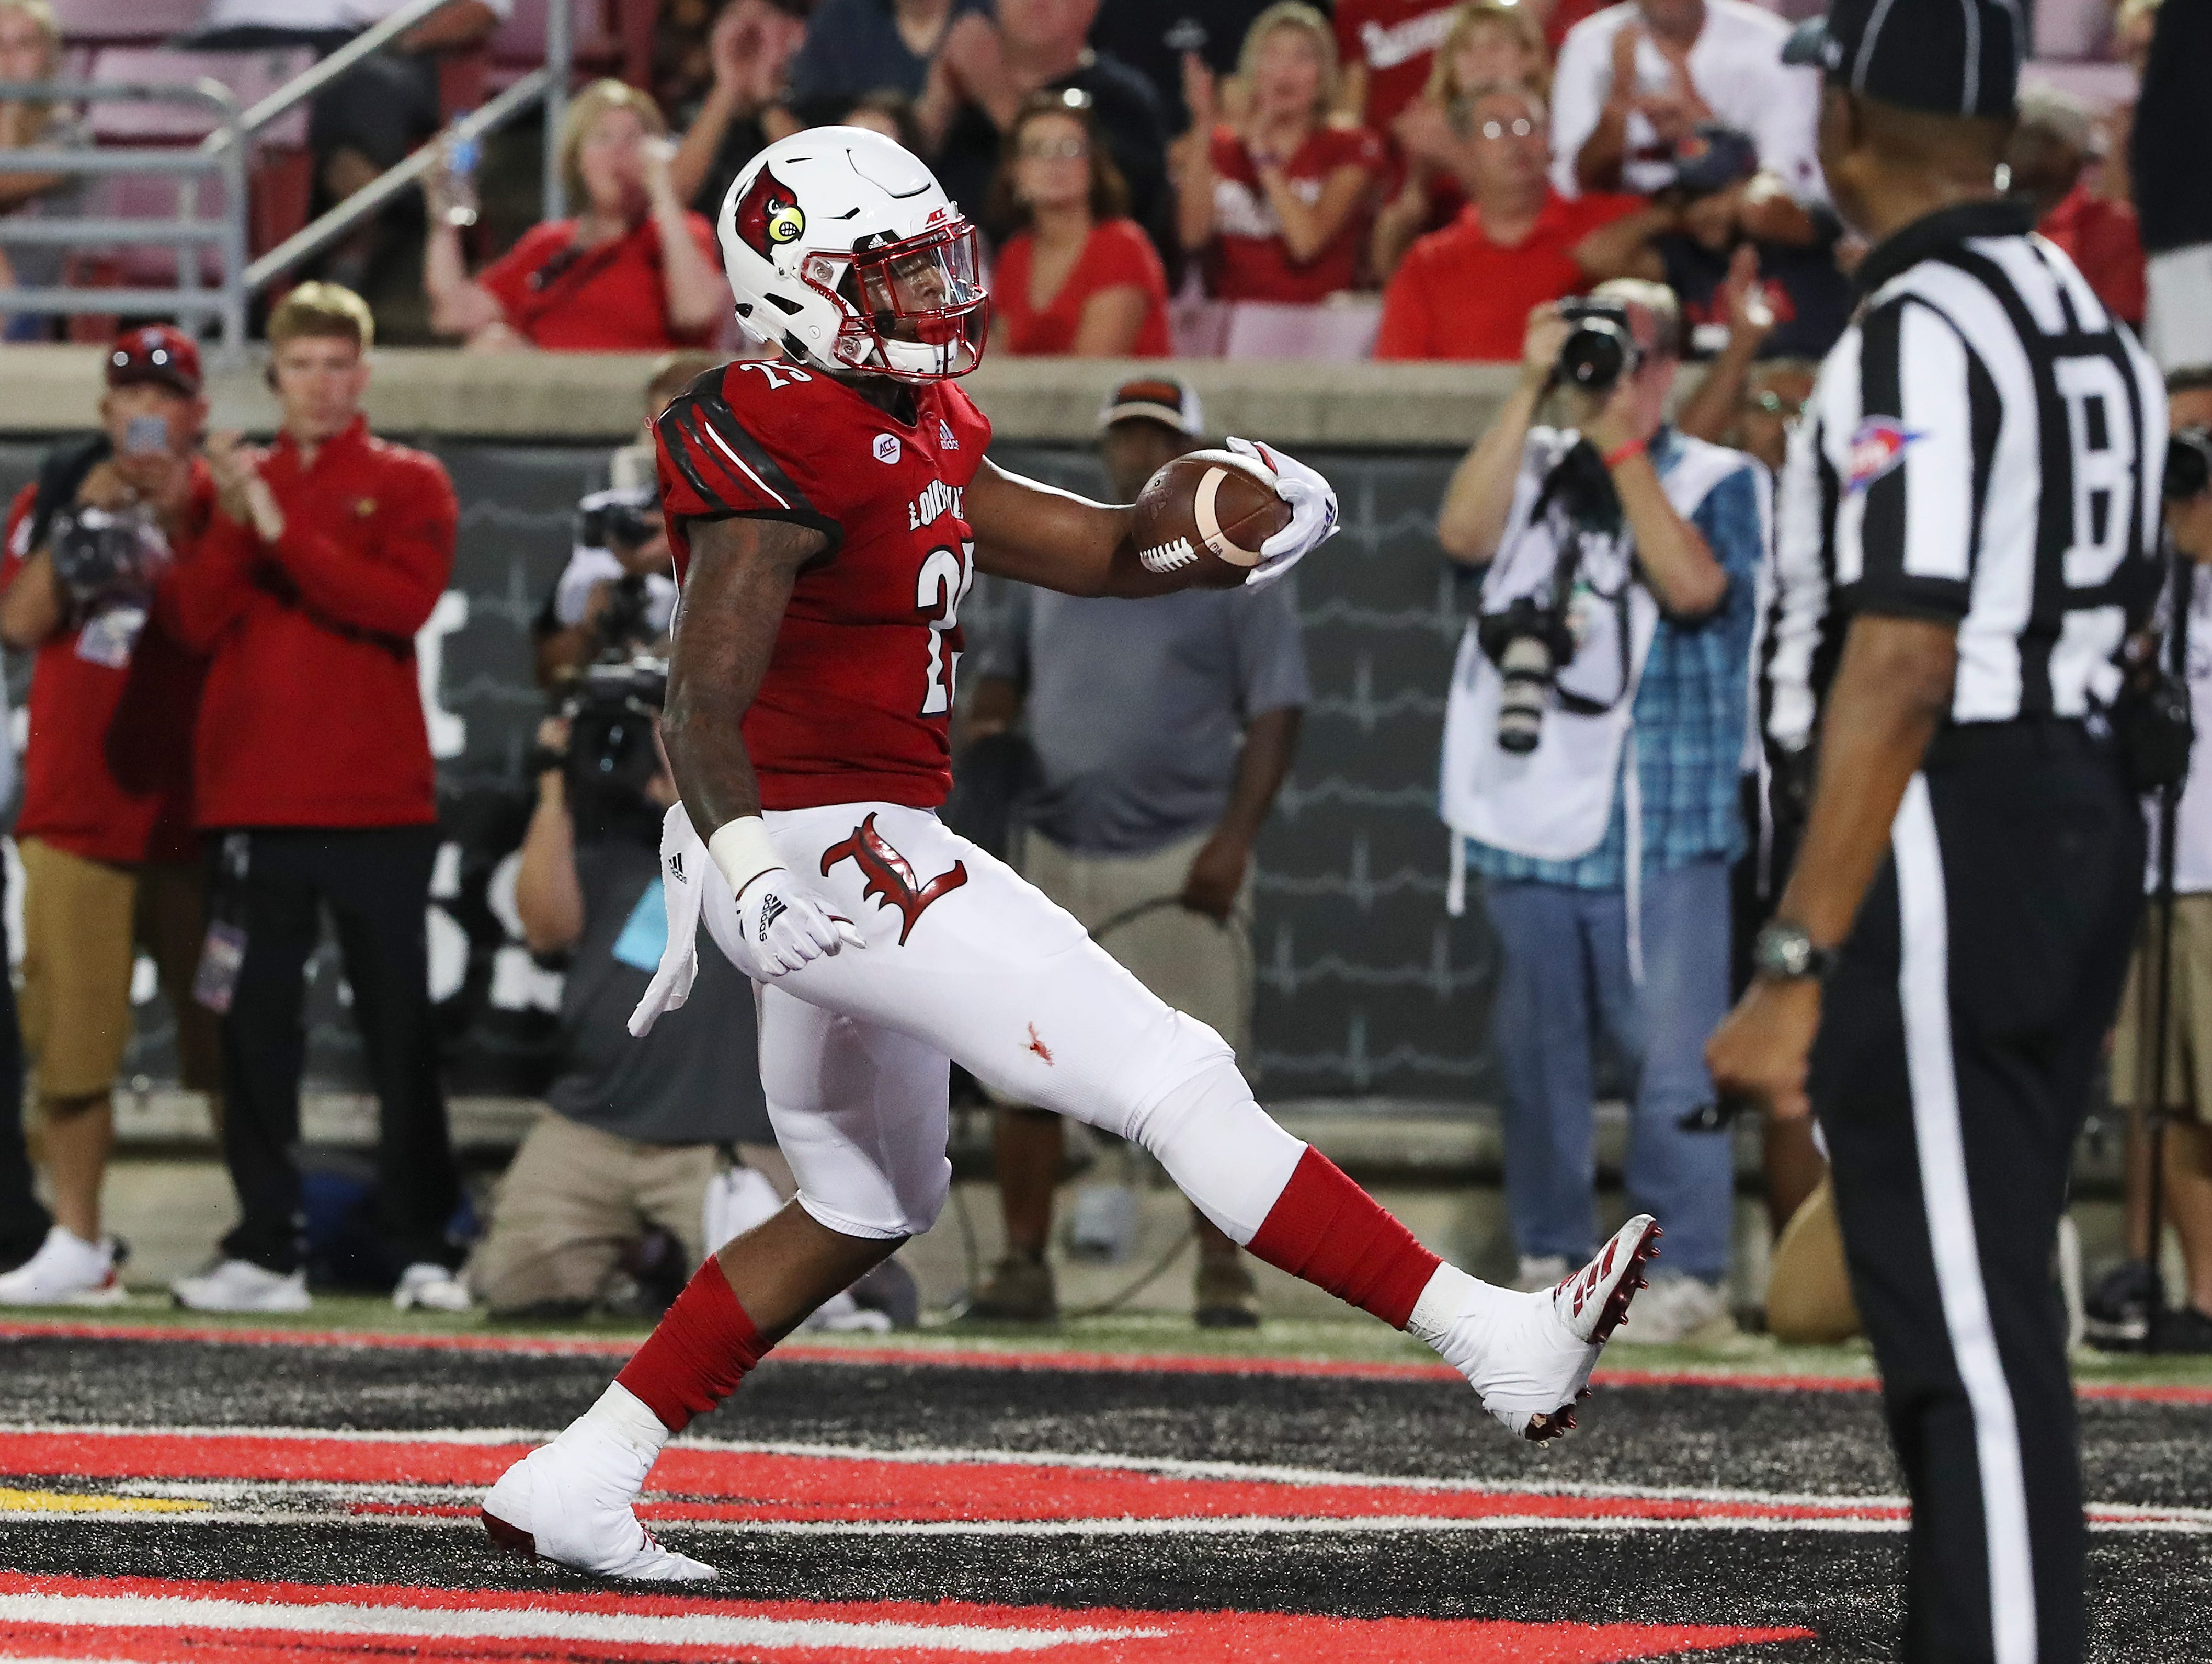 Louisville's Dae Williams (25) celebrates in the endzone as he scored a touchdown to take a 20-17 lead against WKU during their game at Cardinal Stadium.